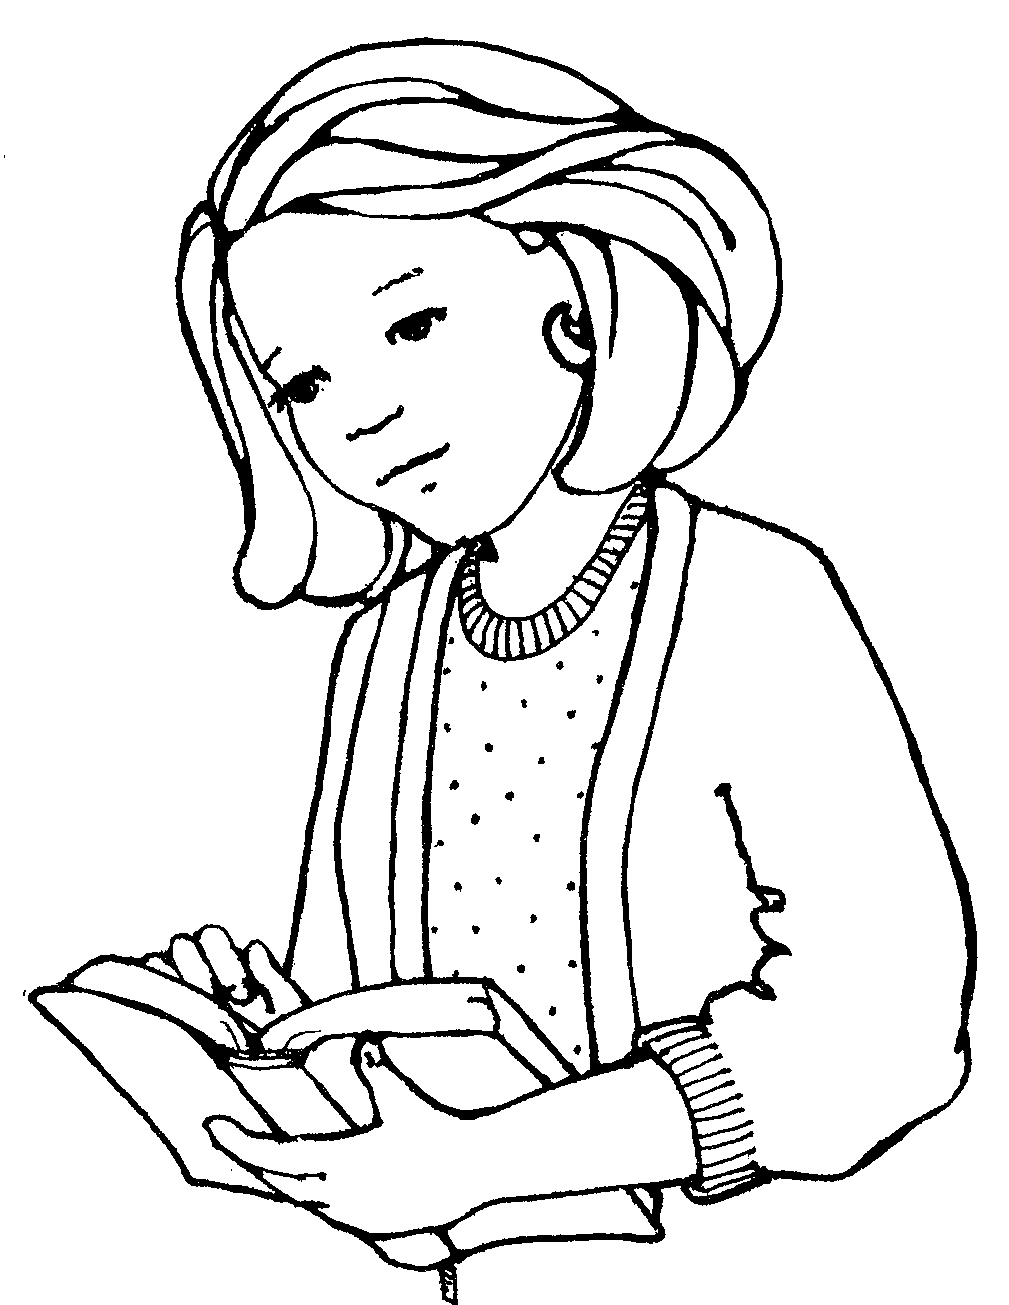 Clipart of a woman and a girl freeuse download Girl reading scriptures clipart - ClipartFest freeuse download